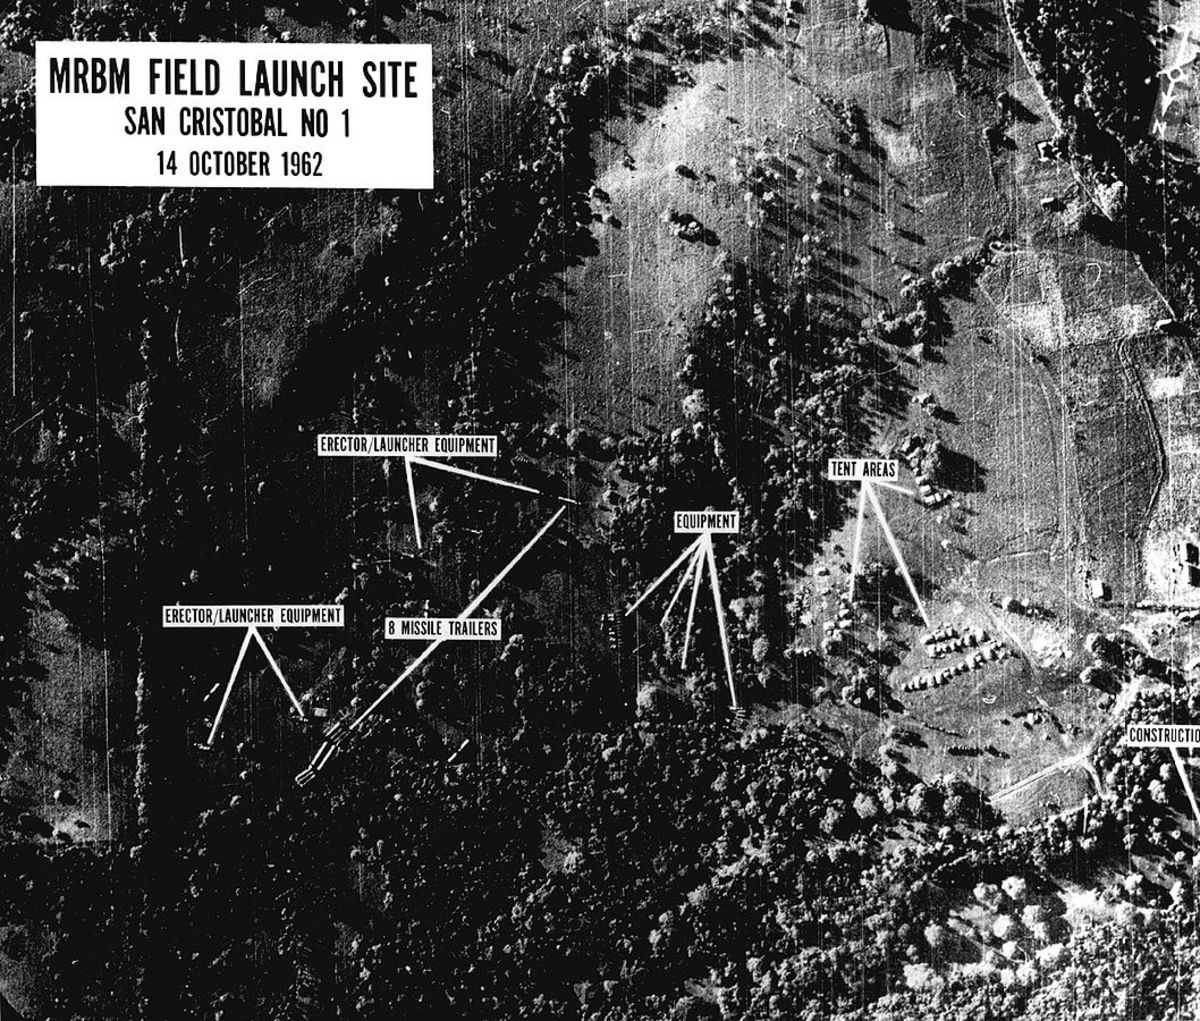 One of the first images of missile bases under construction shown to President Kennedy on the morning of October 16.